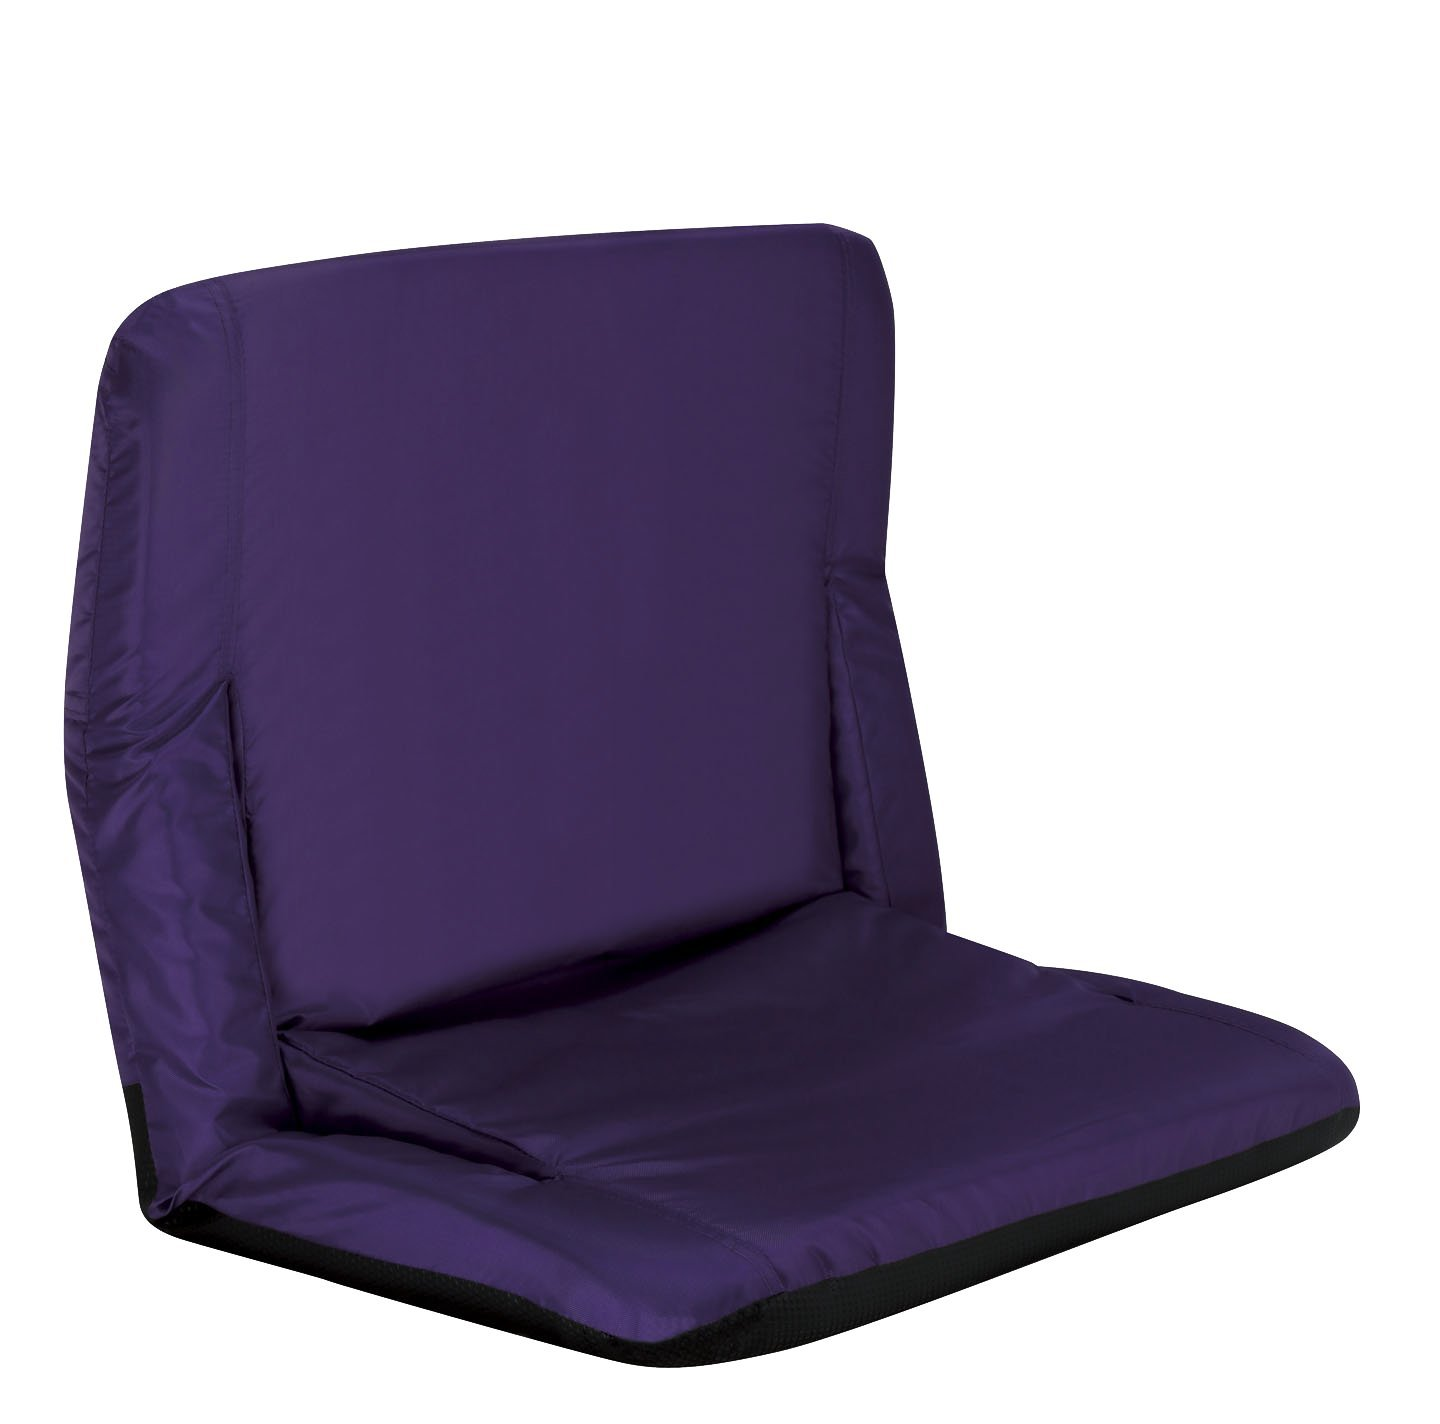 Amazon Naomi Home Venice Portable Reclining Seat with Armrest